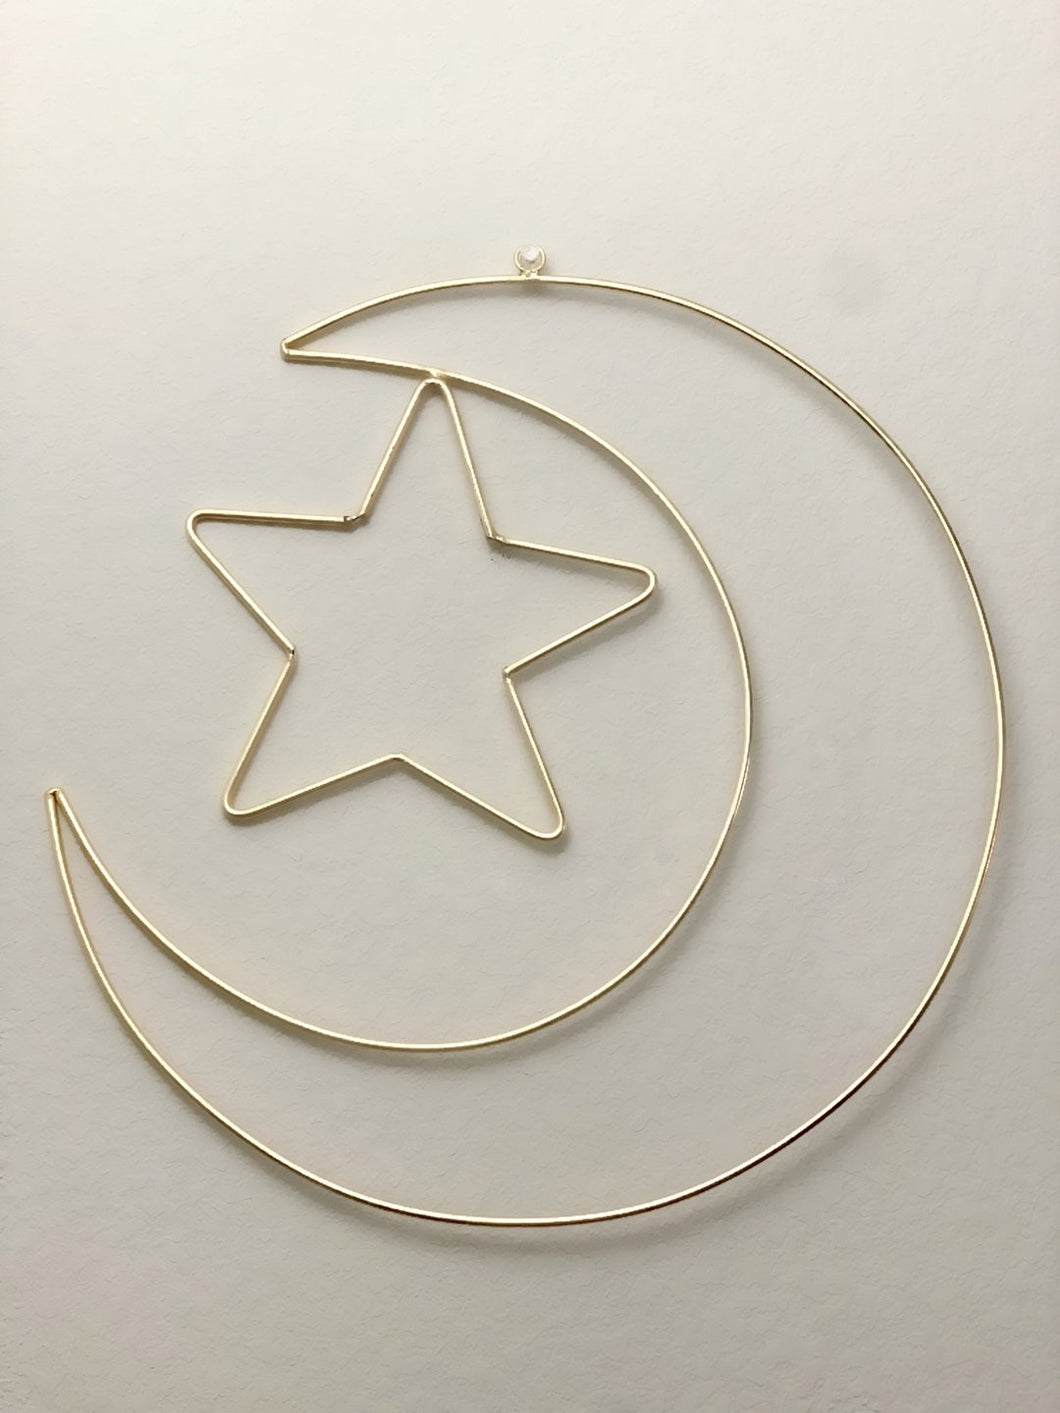 Crescent Moon and Star Wall Decor